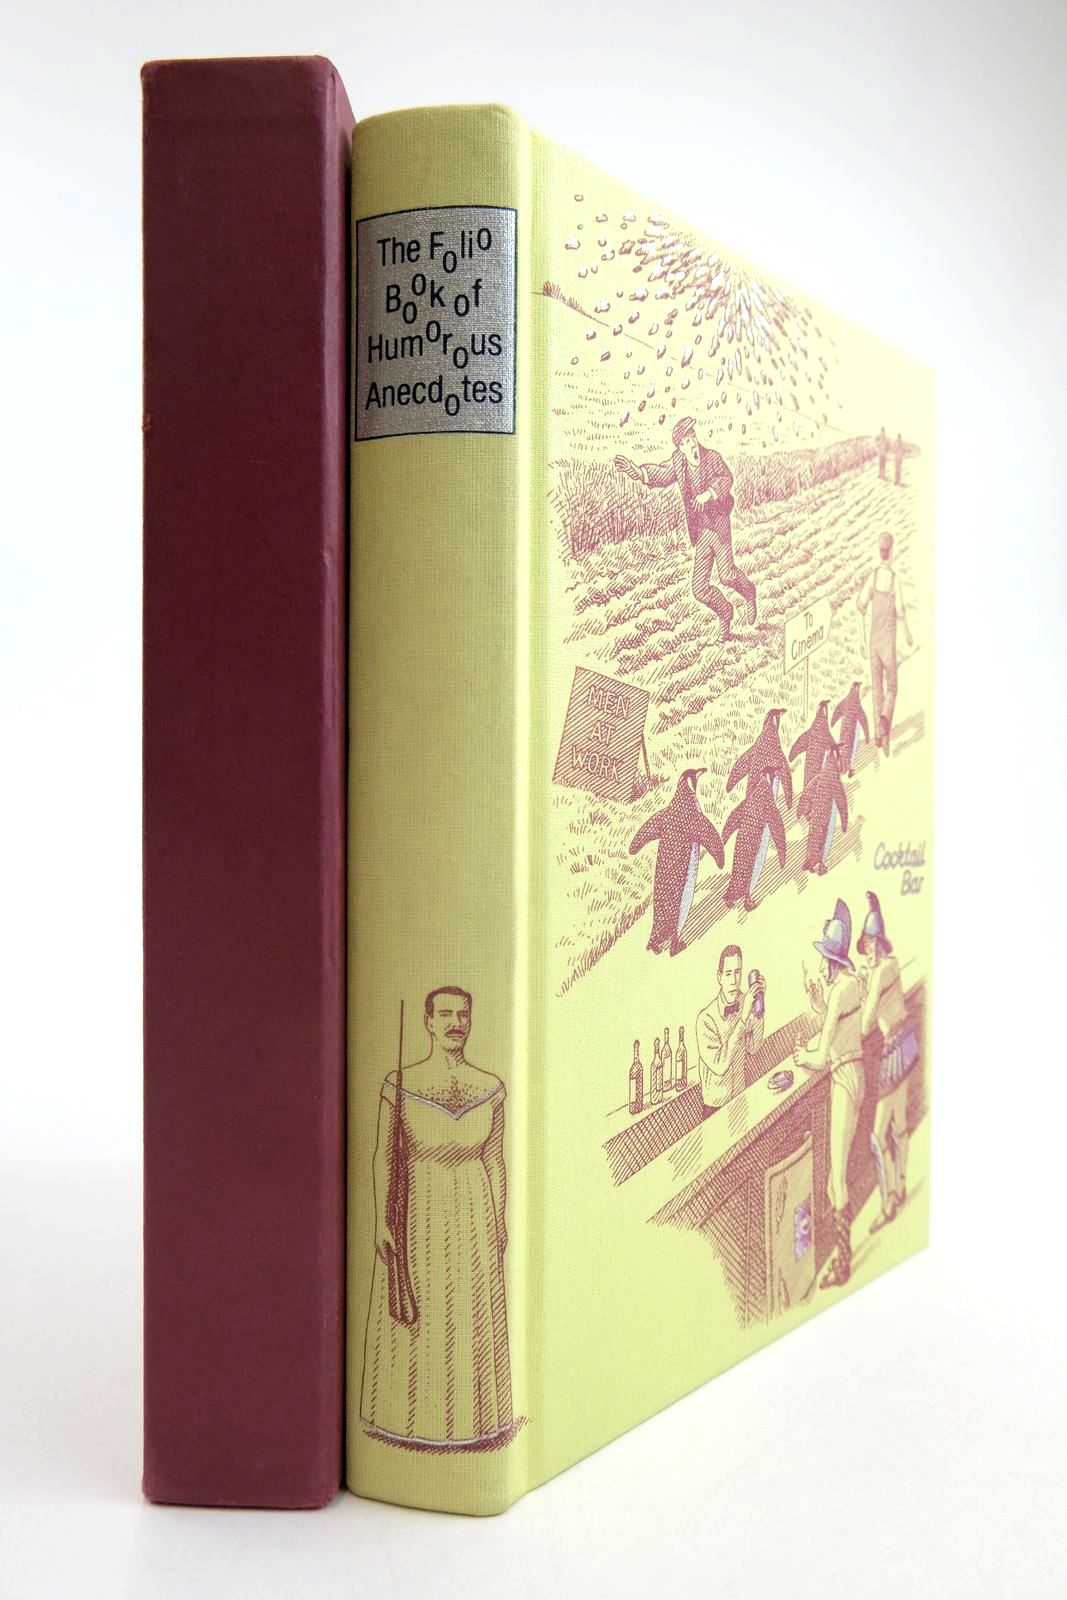 Photo of THE FOLIO BOOK OF HUMOROUS ANECDOTES written by Leeson, Edward illustrated by Hardcastle, Nick published by Folio Society (STOCK CODE: 2134230)  for sale by Stella & Rose's Books